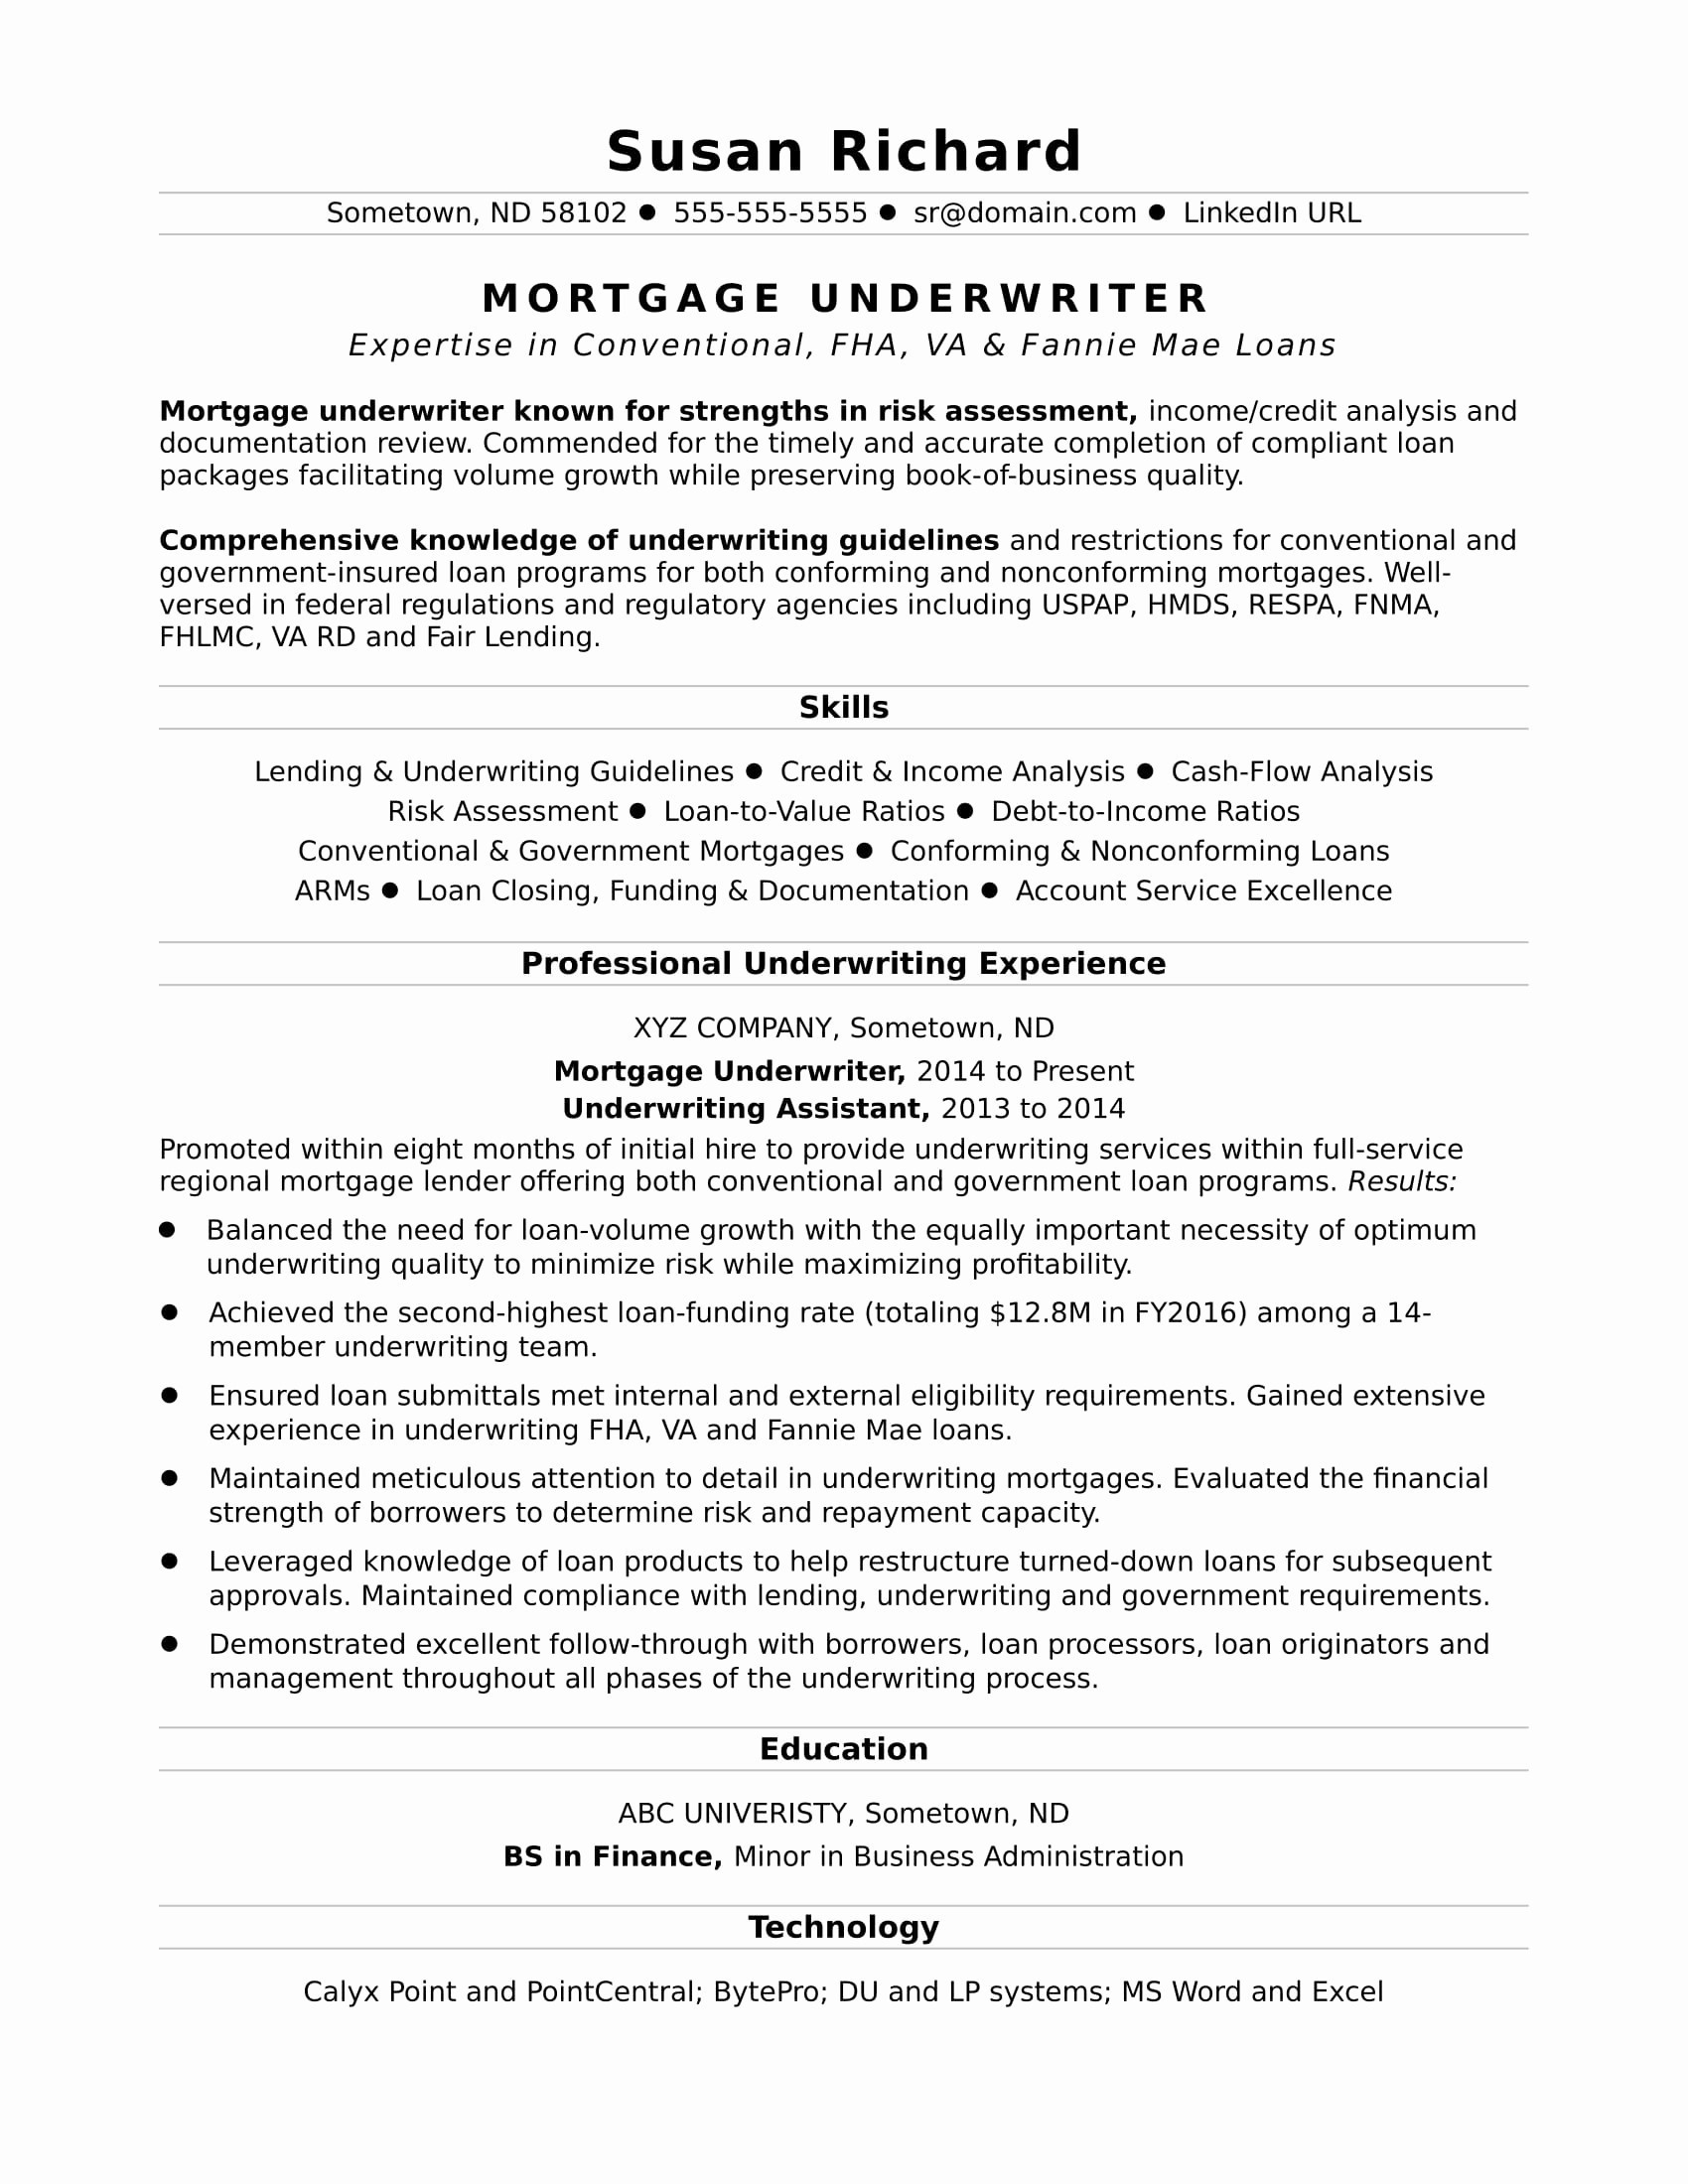 Professional Summary for Resume - Professional Summary Resume Examples Luxury Career Resume Examples